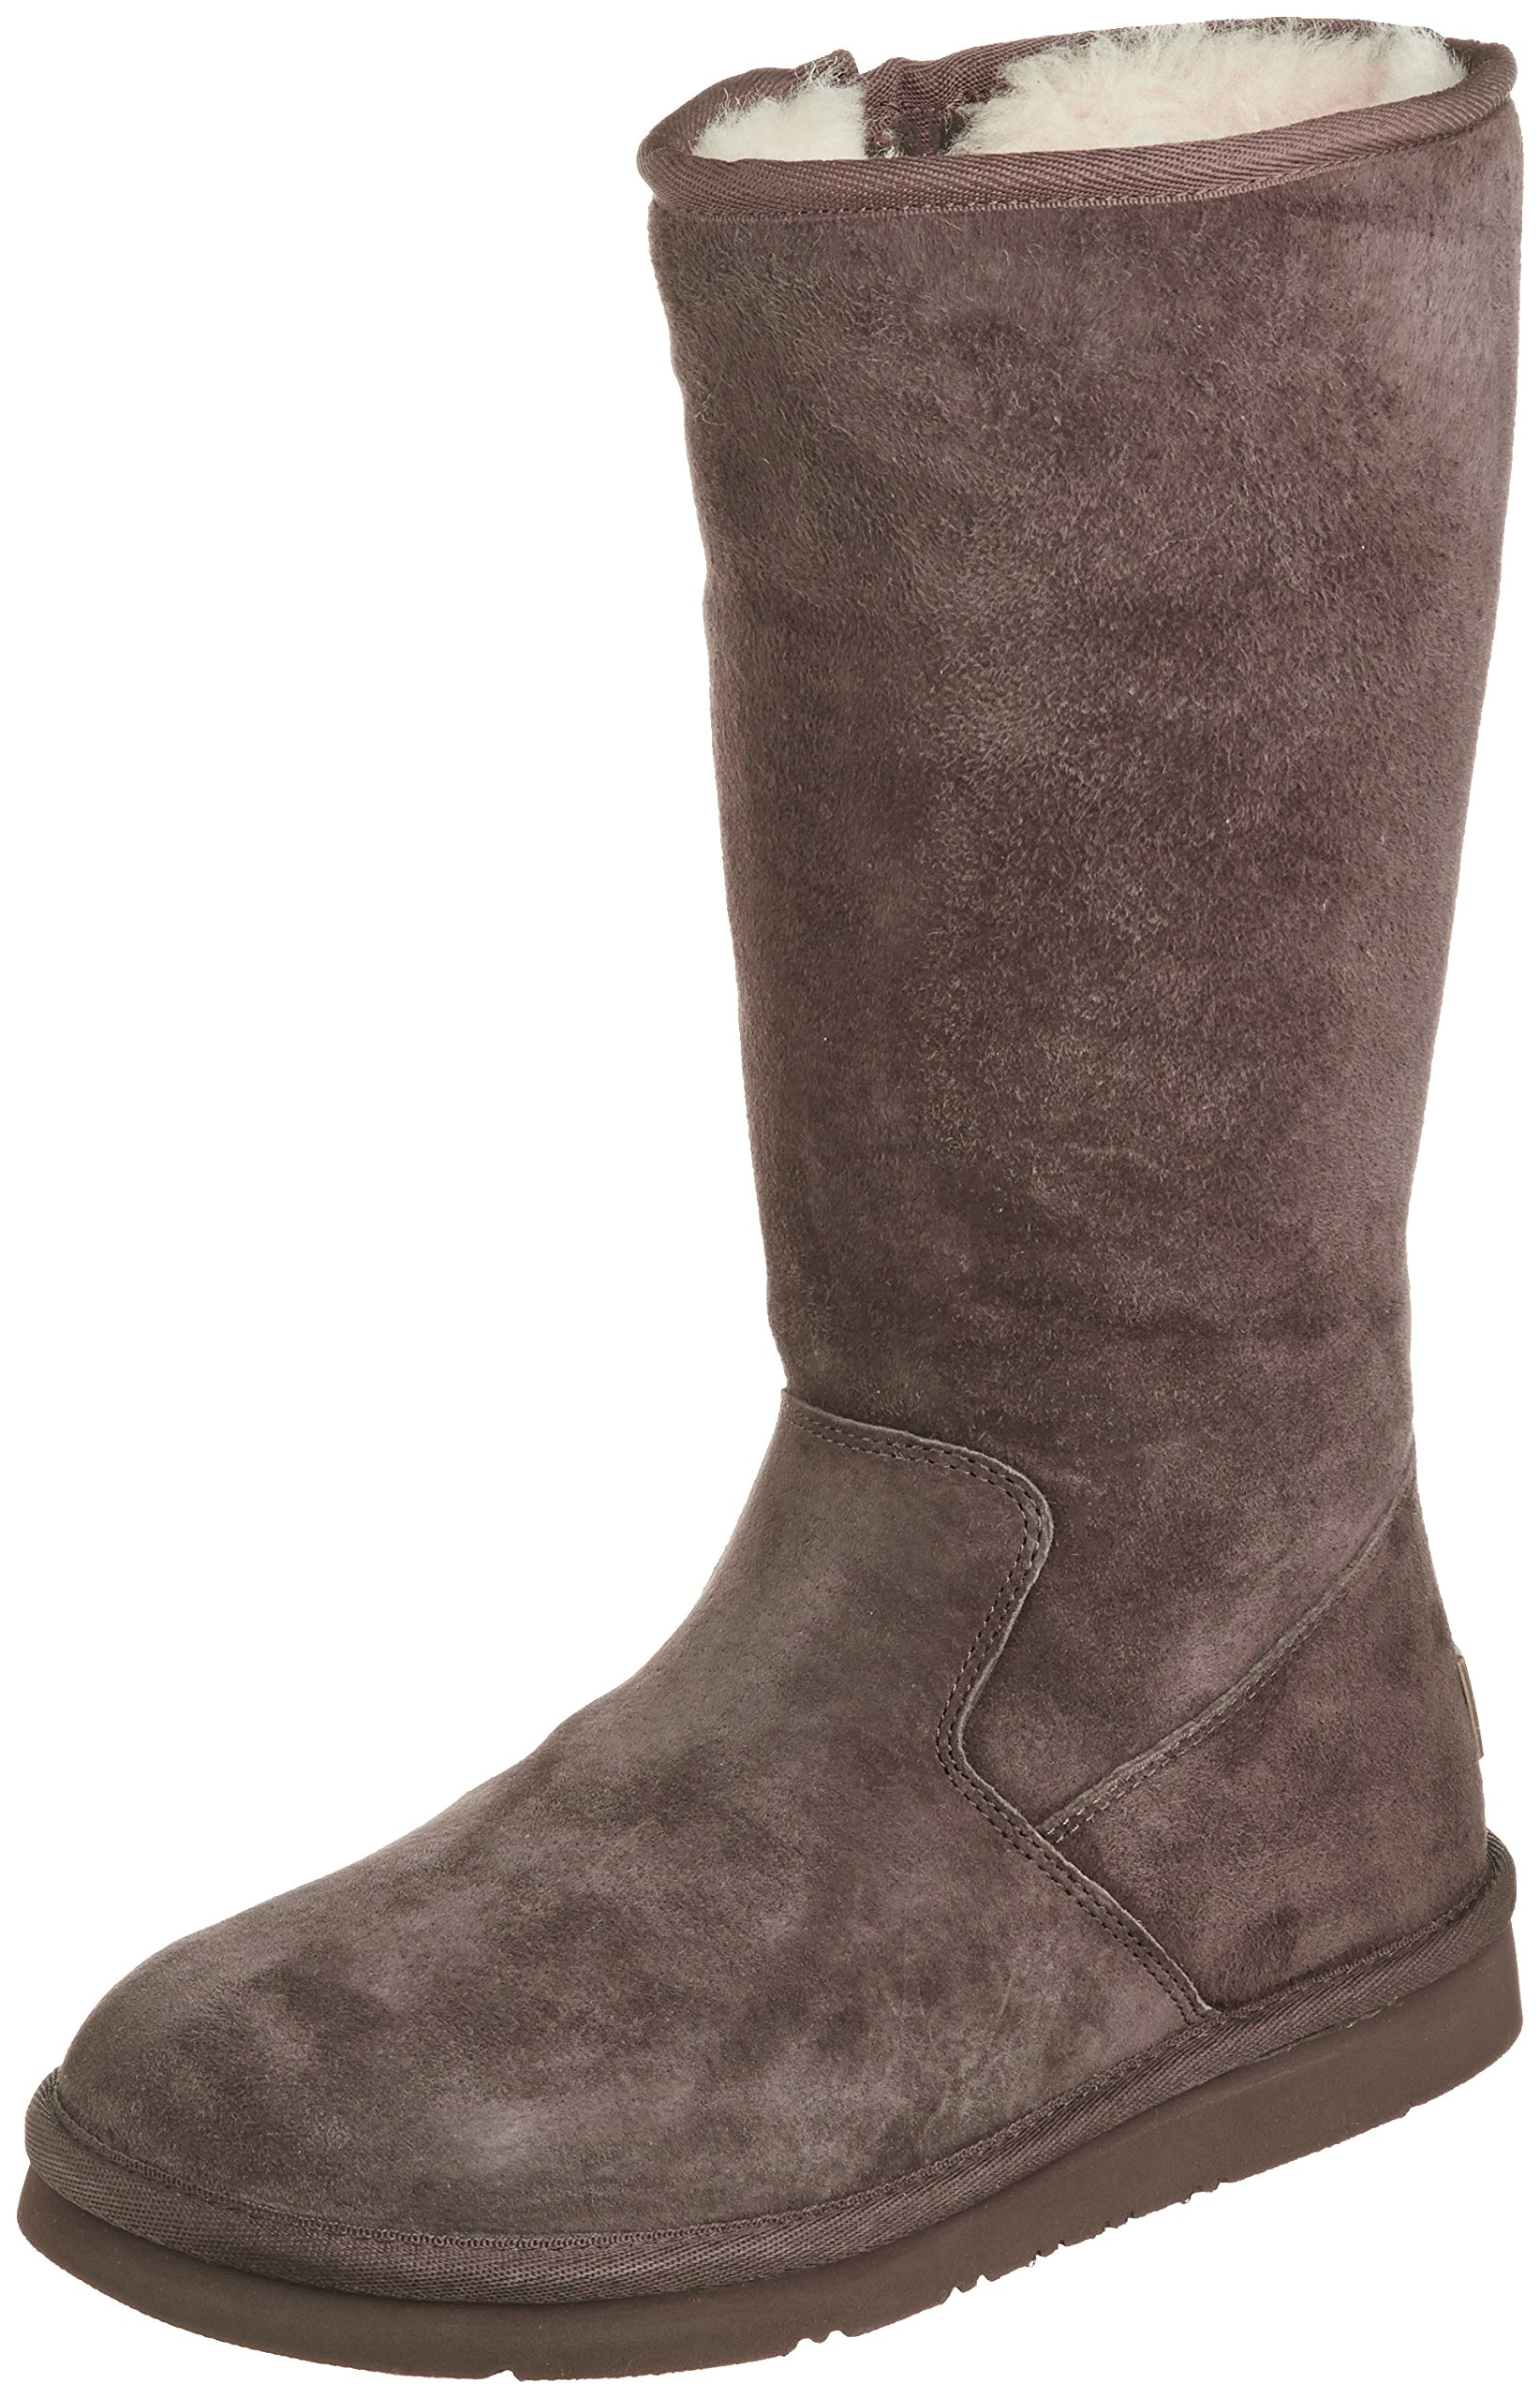 UGG Australia Womens Summer Boot Chocolate Size 5